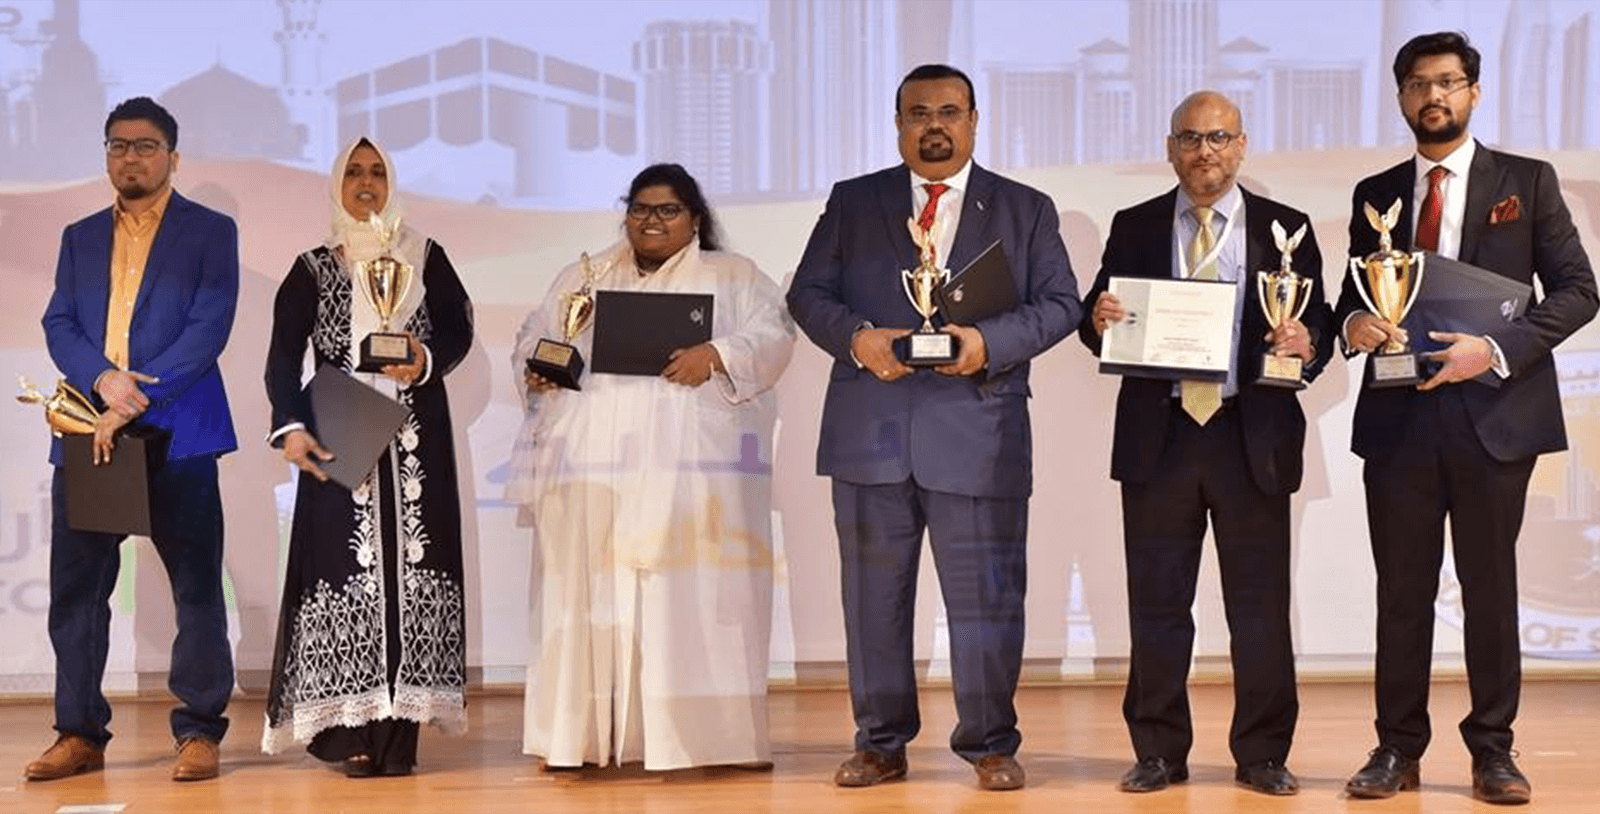 Bilquis (second from left) holds her trophy onstage after winning at the District 79 speech contest in 2018.